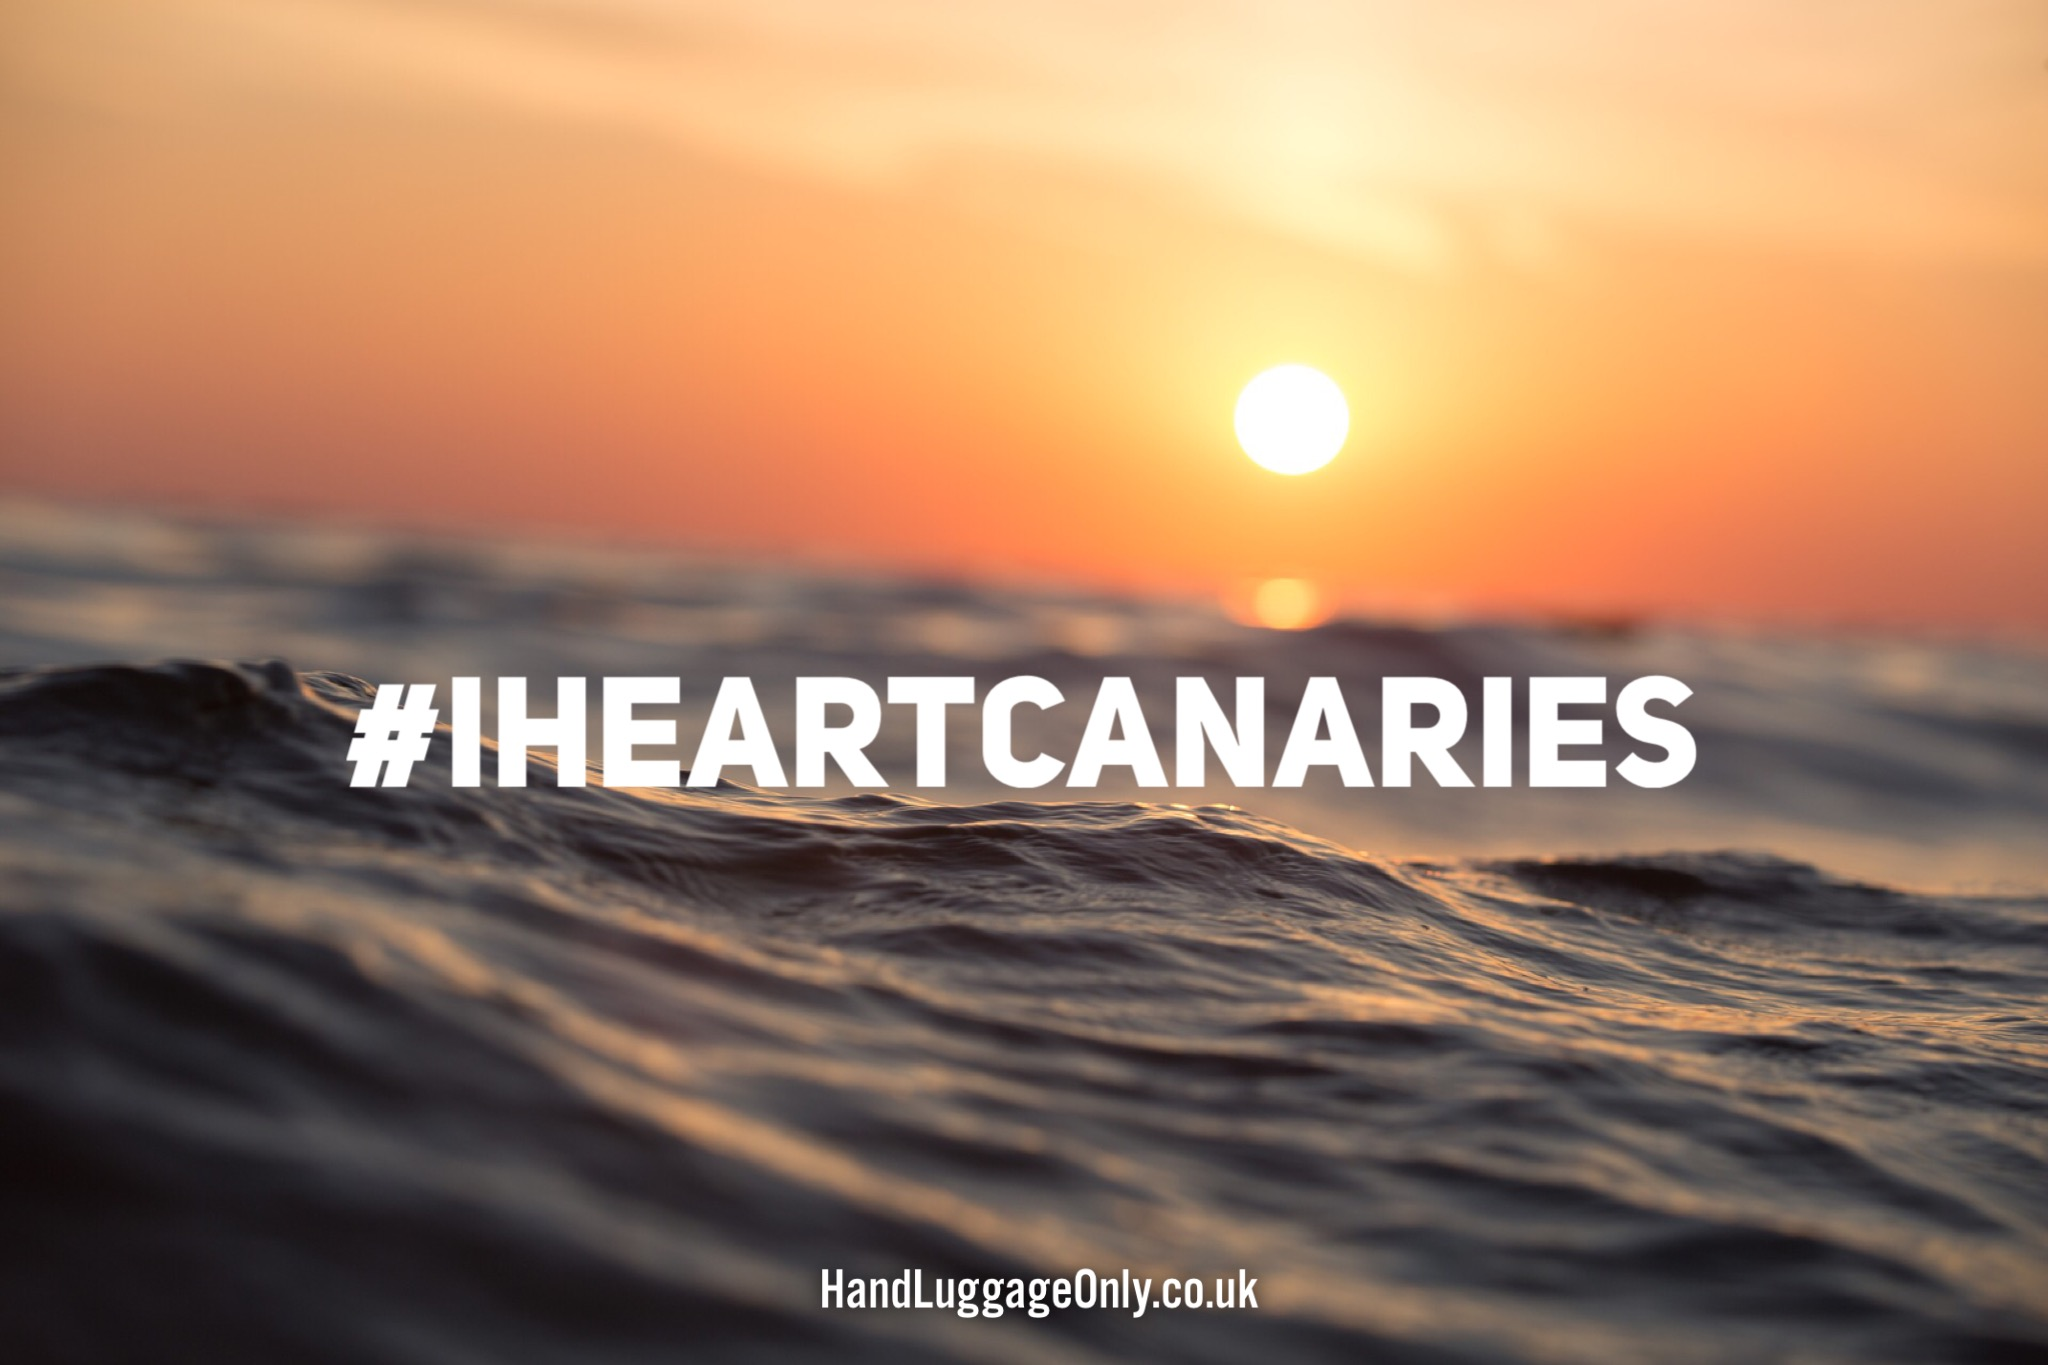 #IheartCanaries